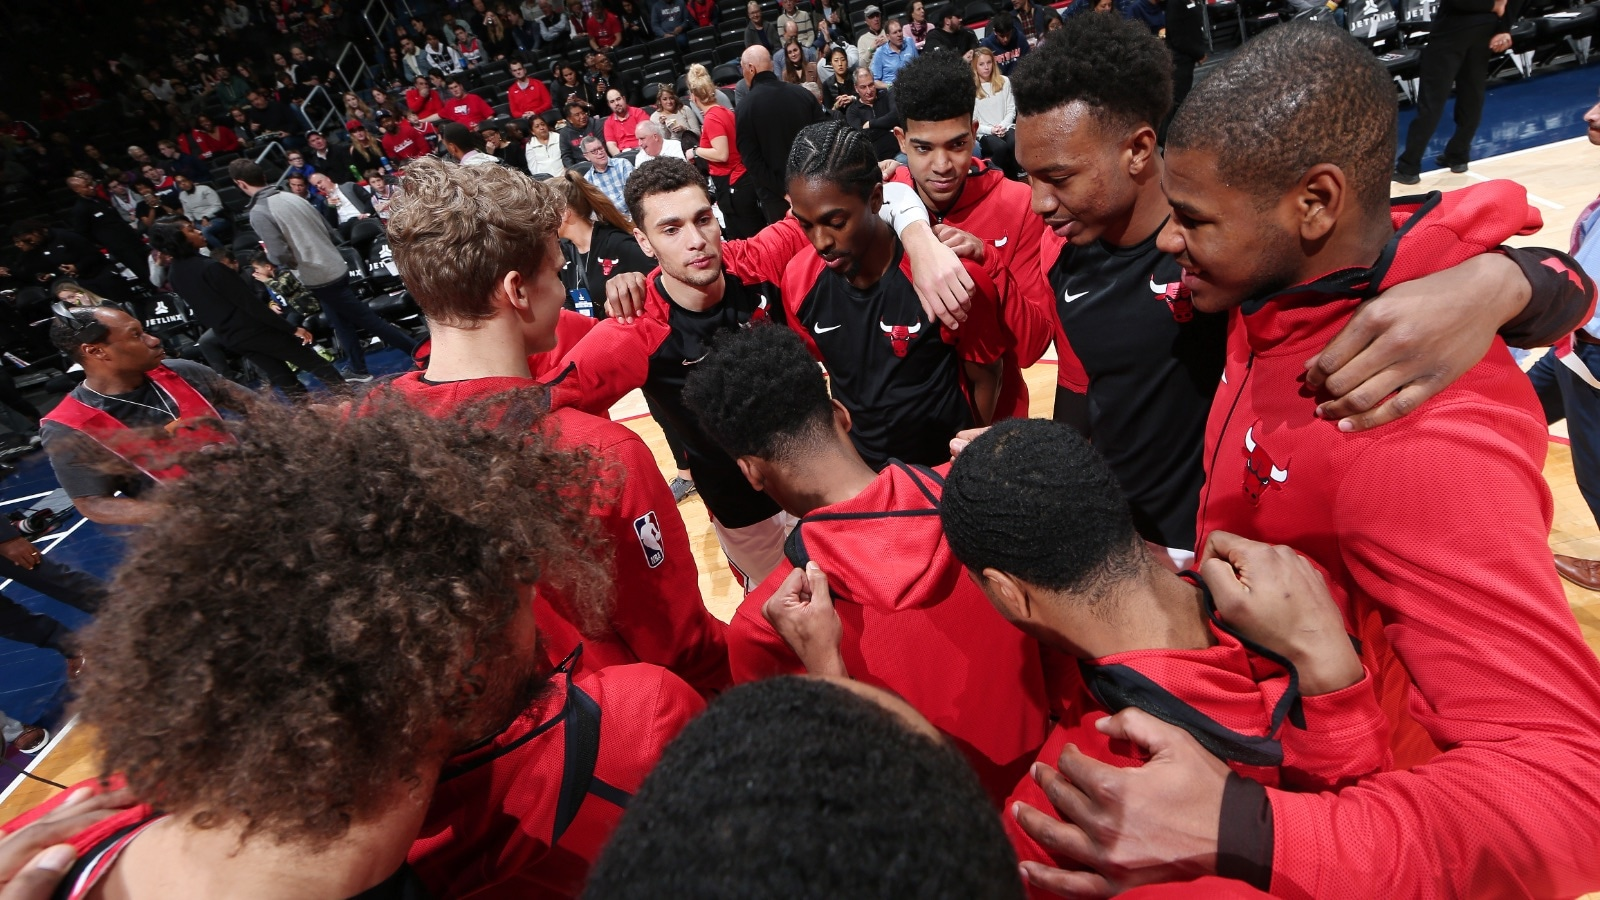 Bulls huddle up before the game